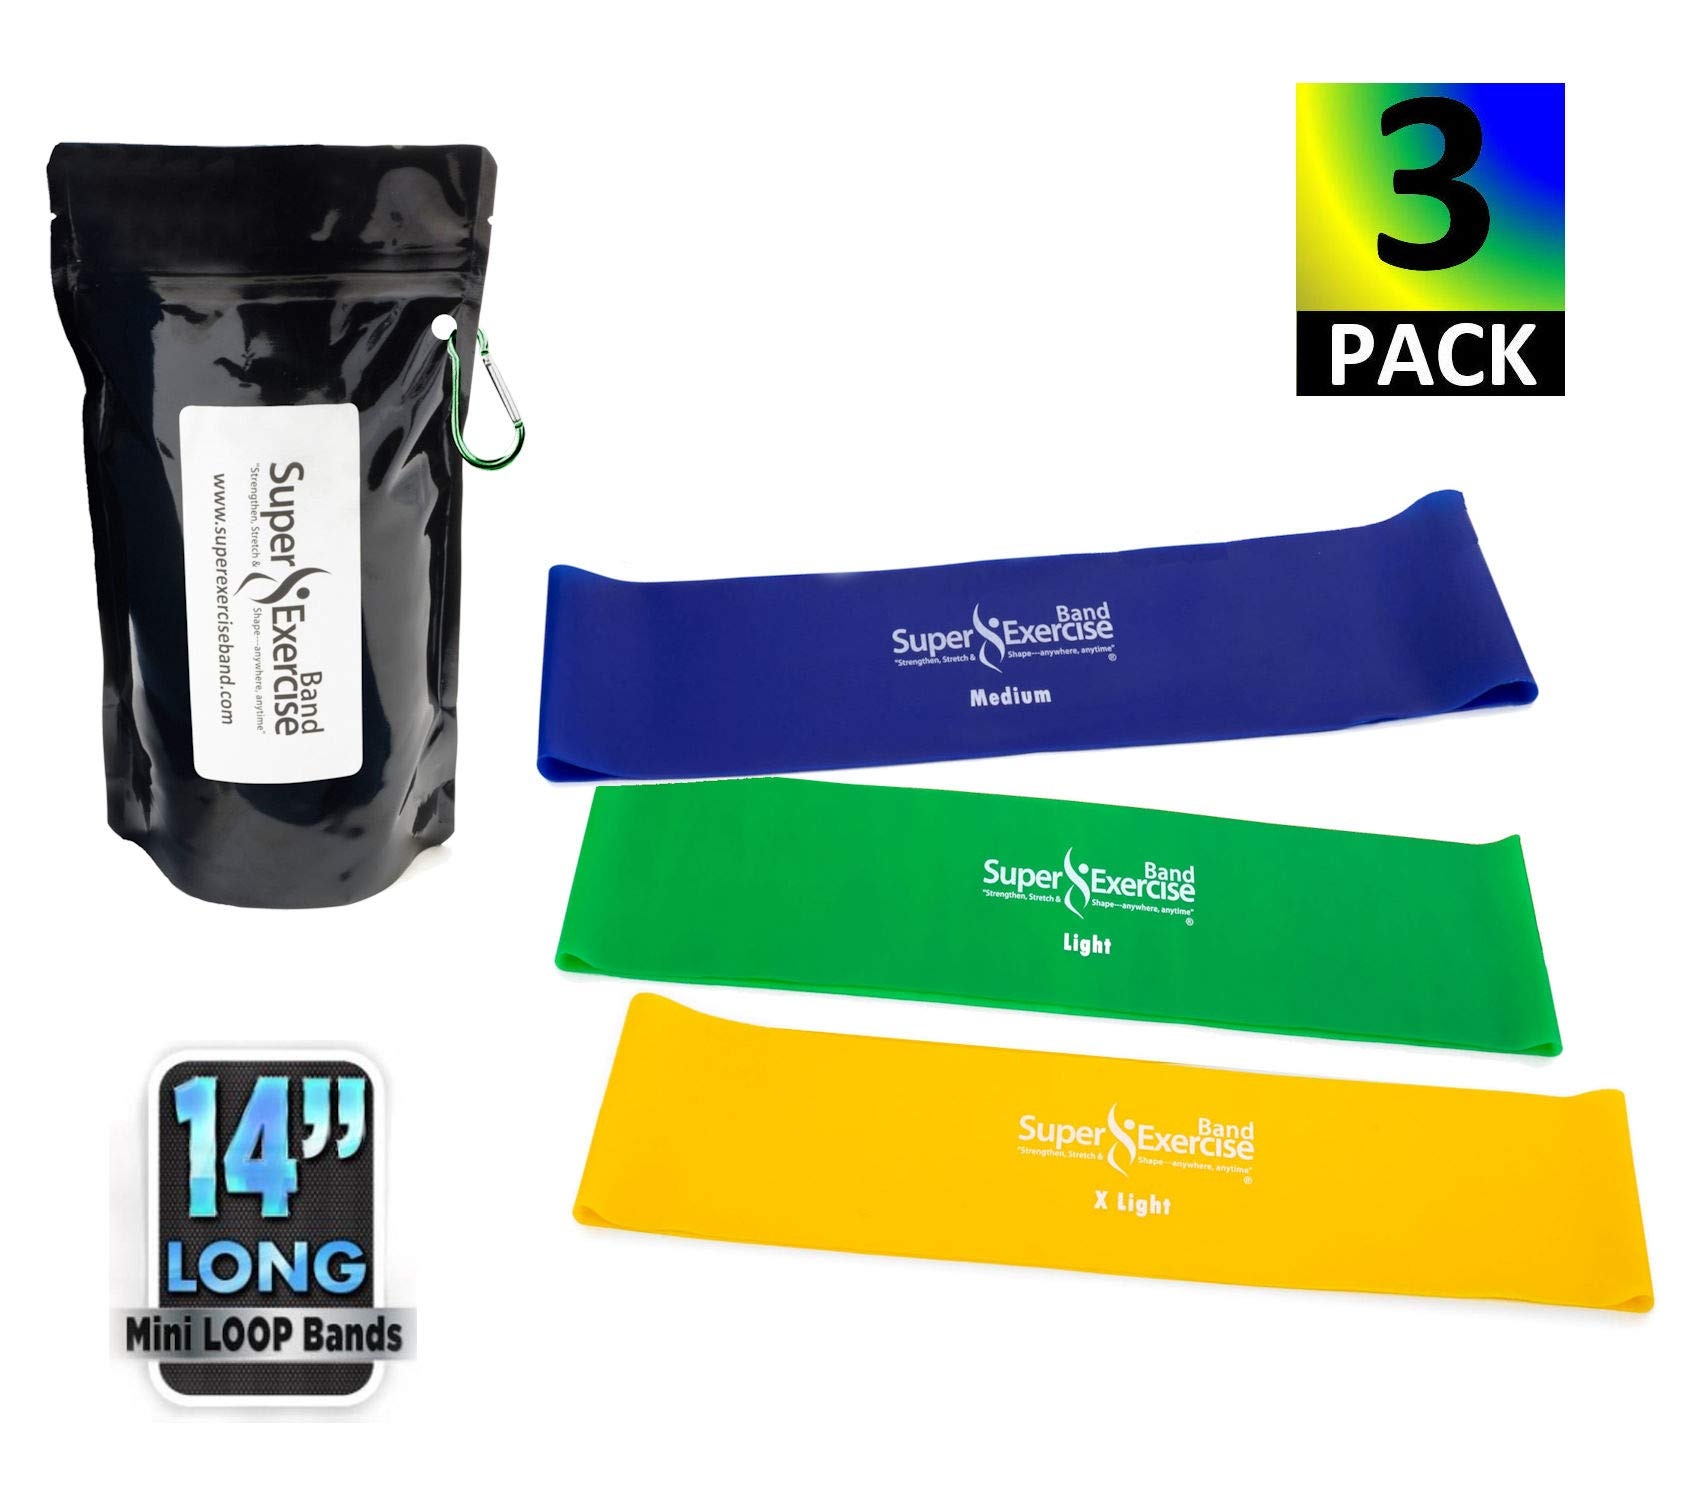 Super Exercise Band 3 Pack 14'' x 3'' Extra Long Light Strength Mini Loop Bands Assortment. Non-Latex Resistance for Fitness, Physical Therapy, Pilates, and Strength Training.